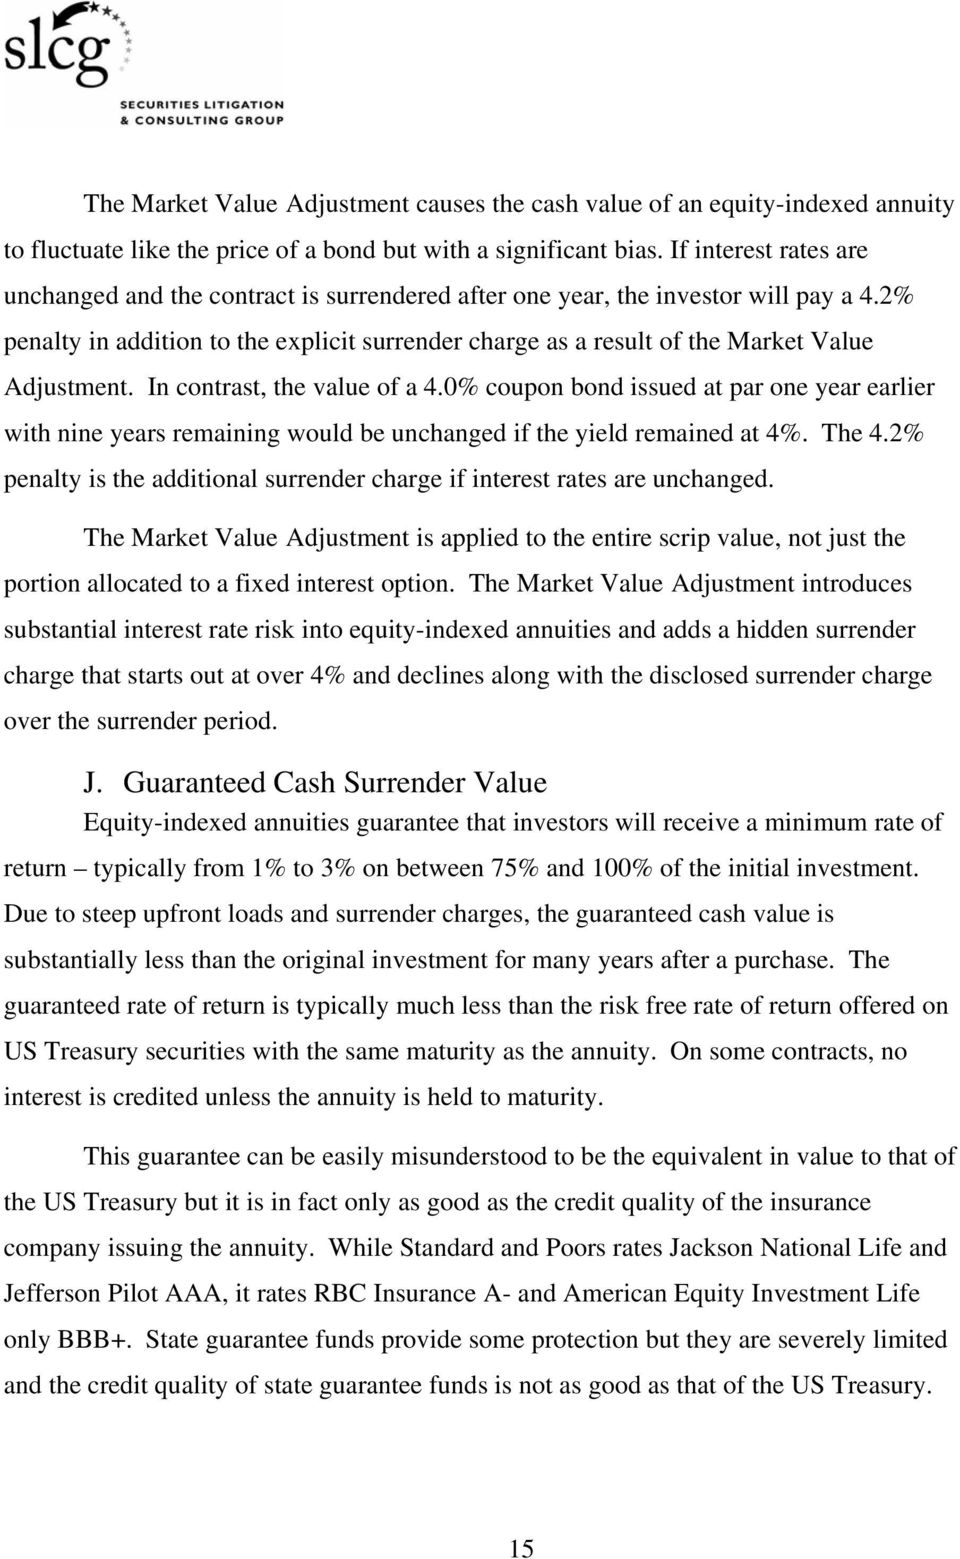 2% penalty in addition to the explicit surrender charge as a result of the Market Value Adjustment. In contrast, the value of a 4.